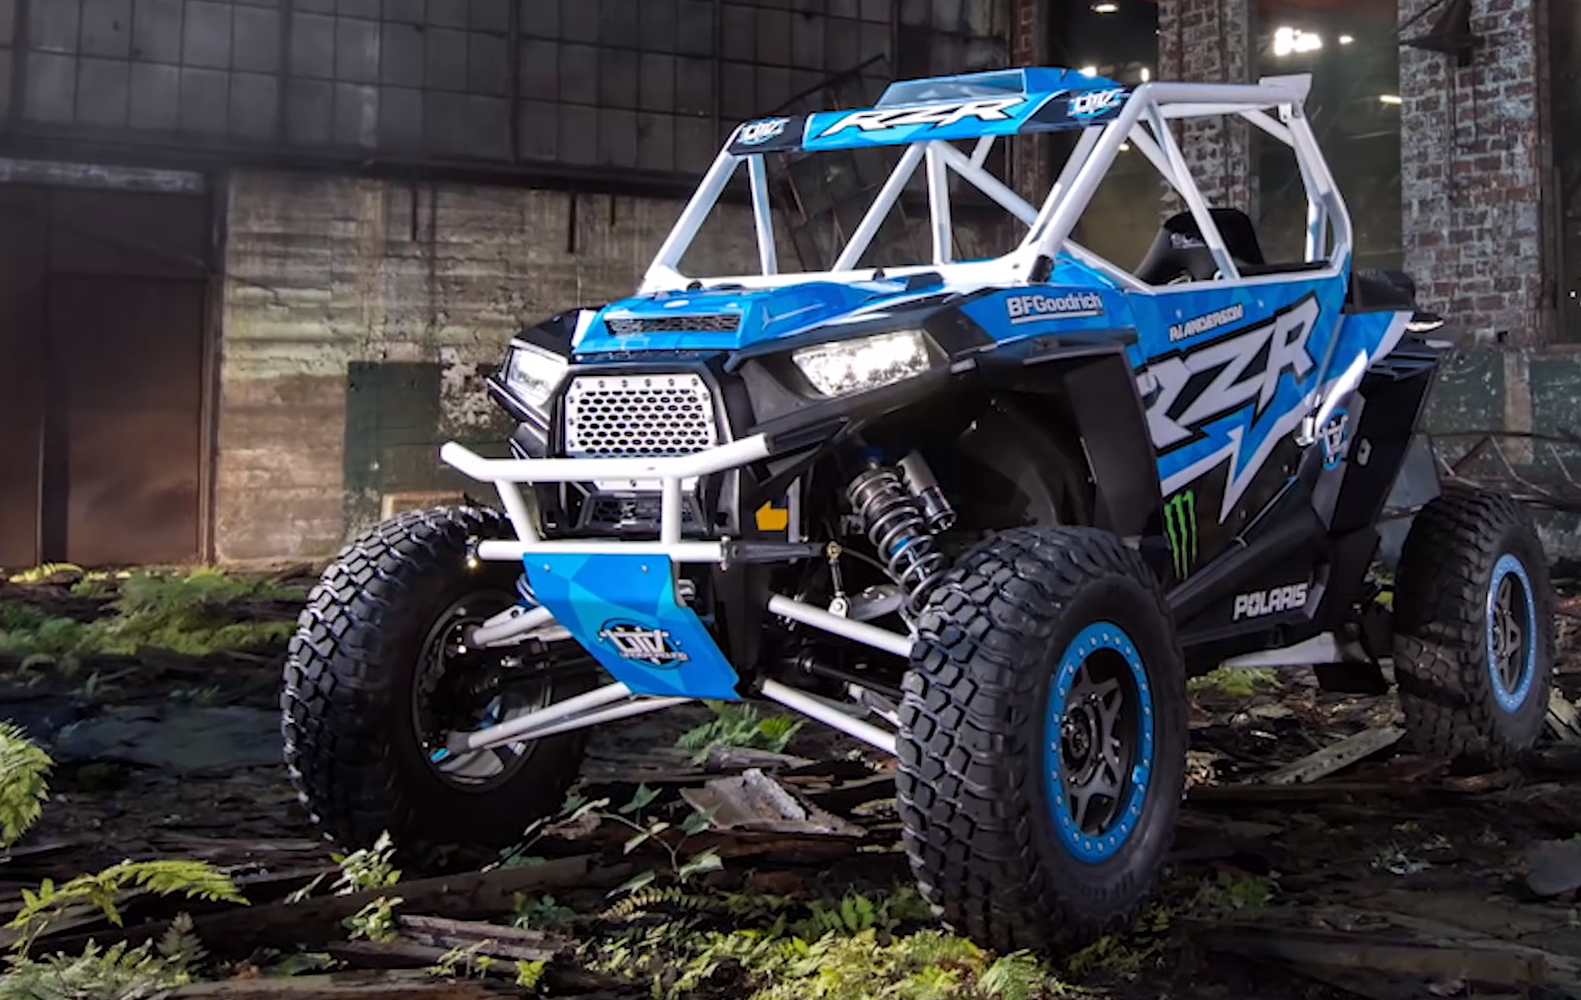 These Death-Defying Stunts In A Monster Buggy Are Just Amazing